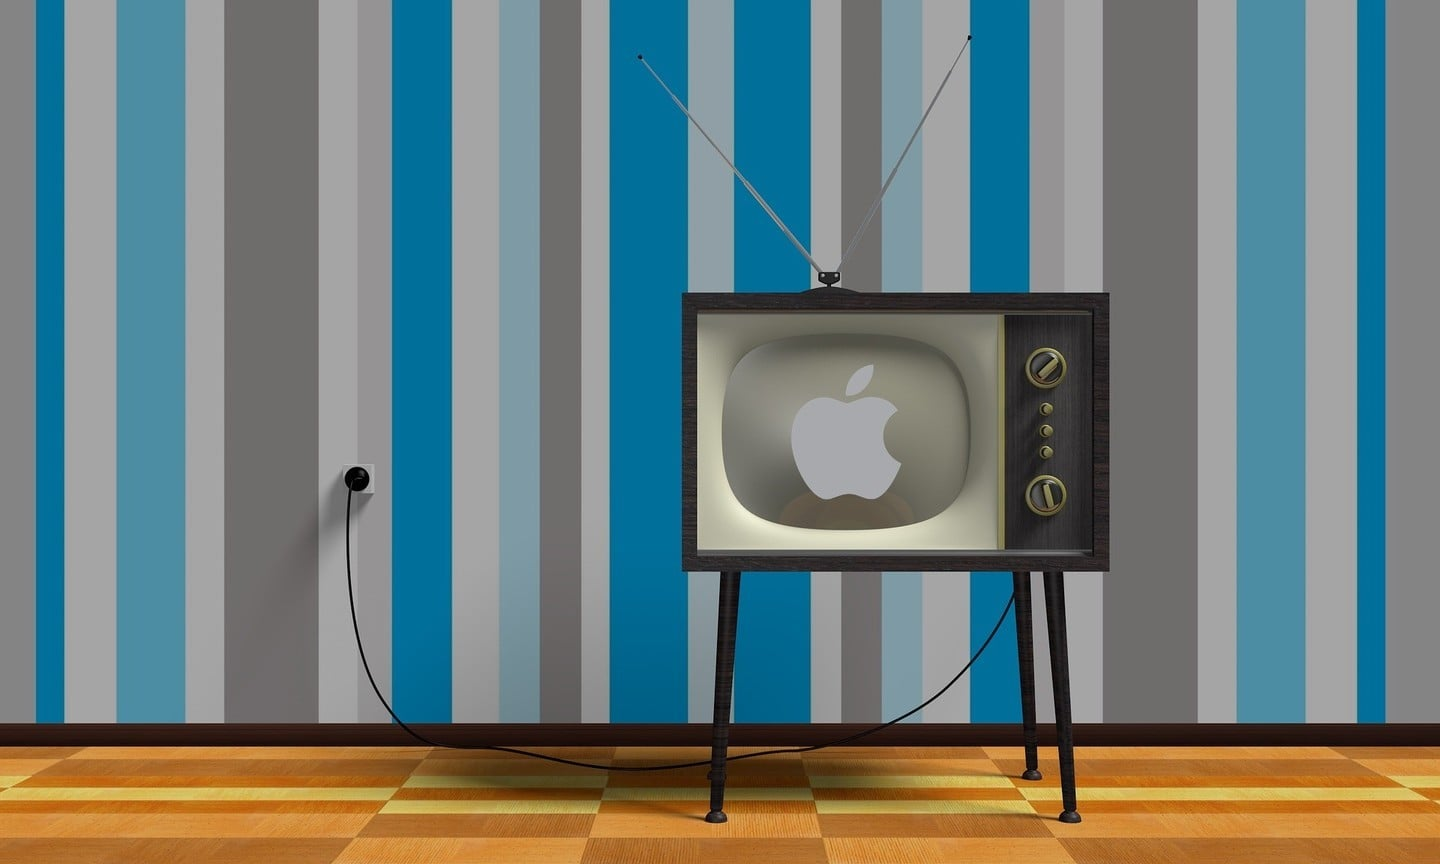 Apple Original TV Programs